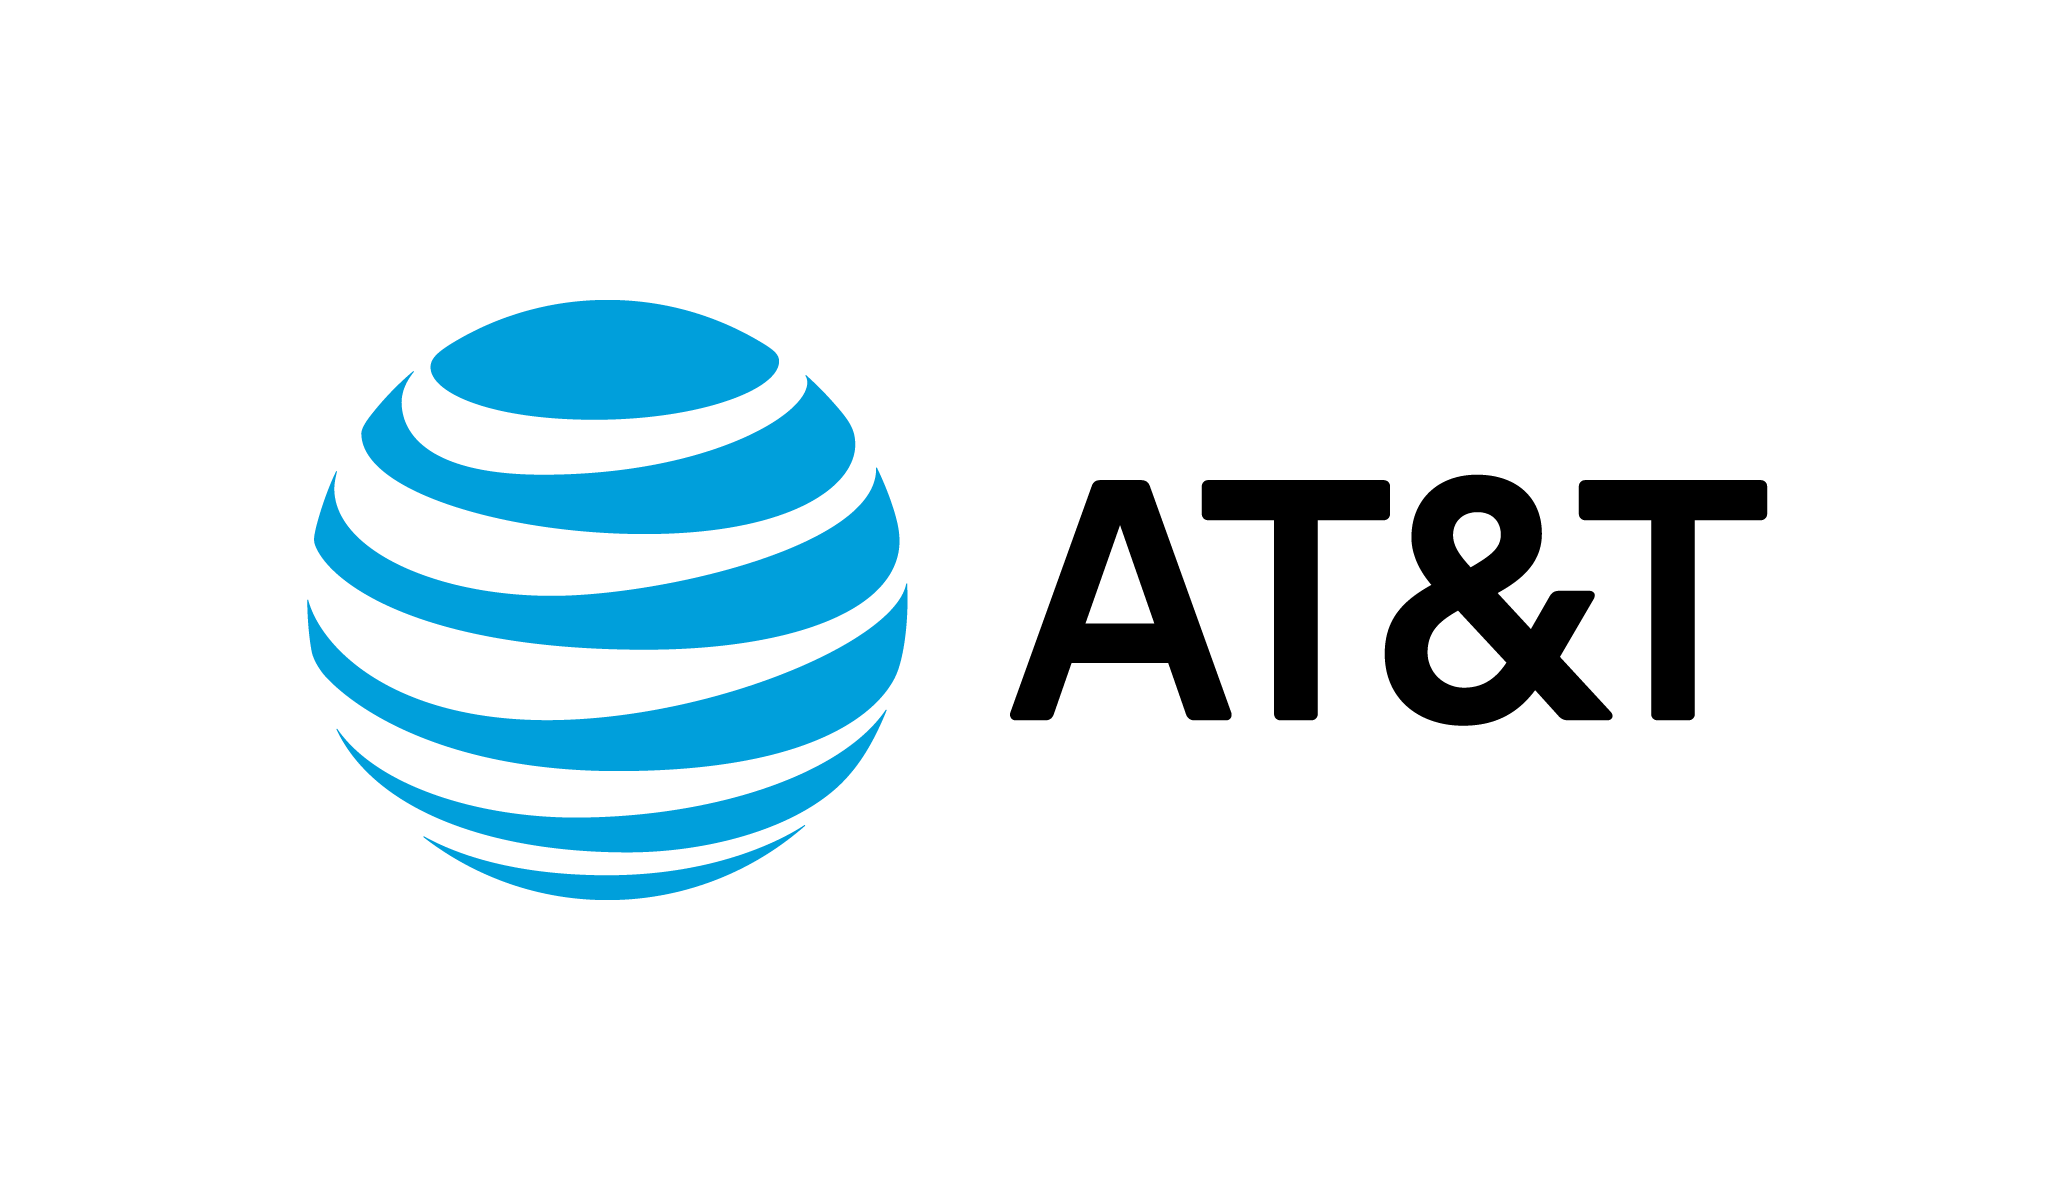 AT&T Communications